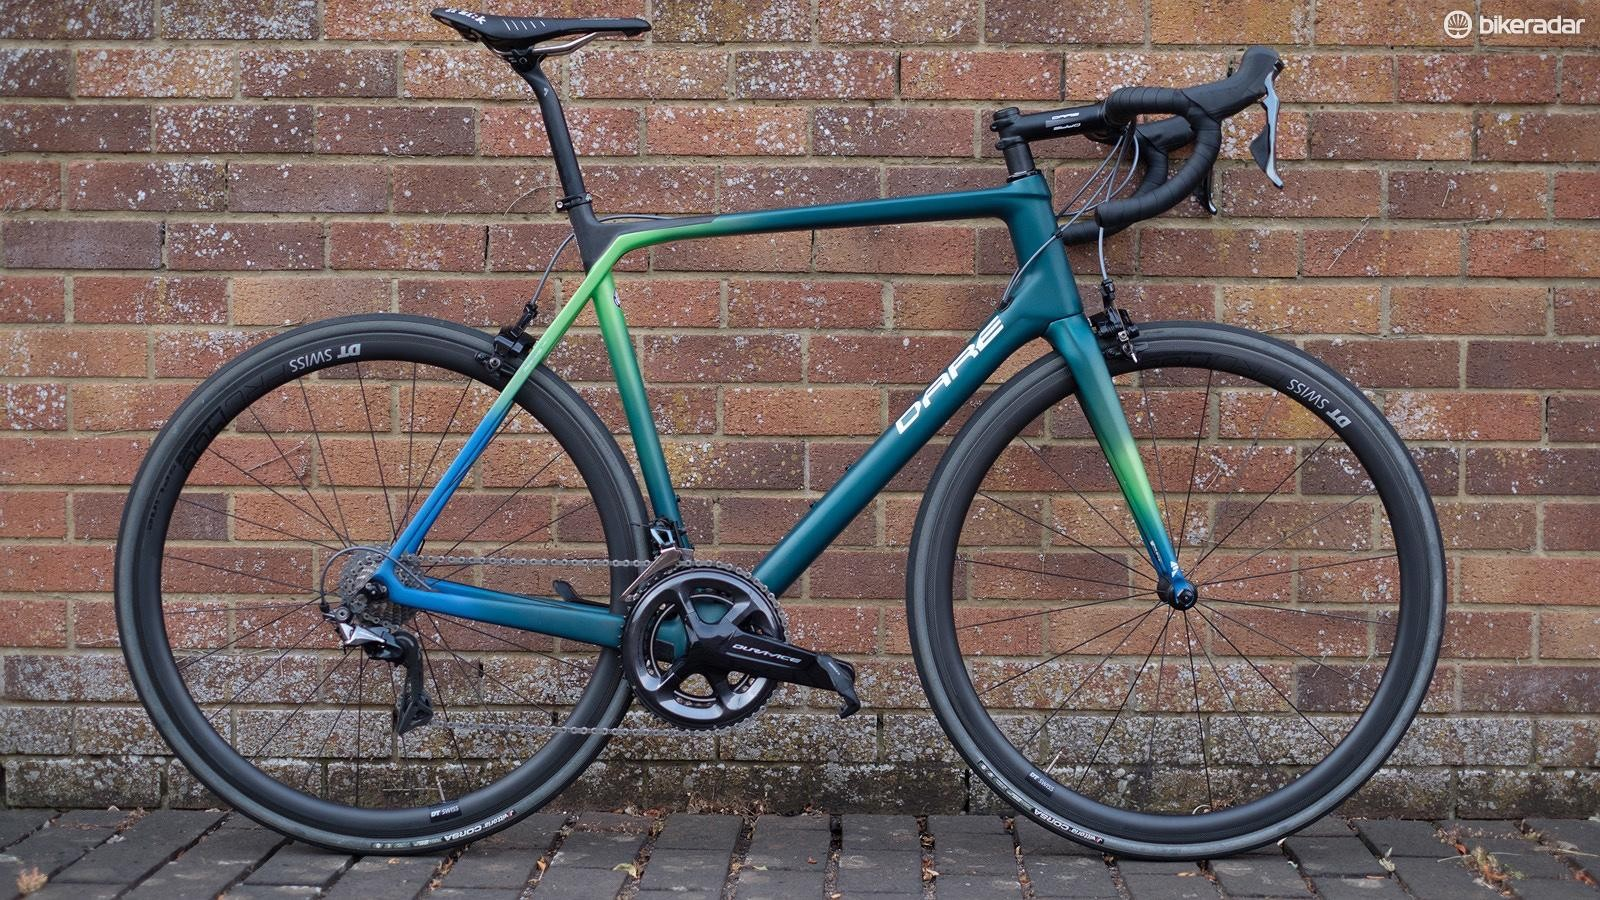 Could Dare Bikes threaten the likes of Canyon?